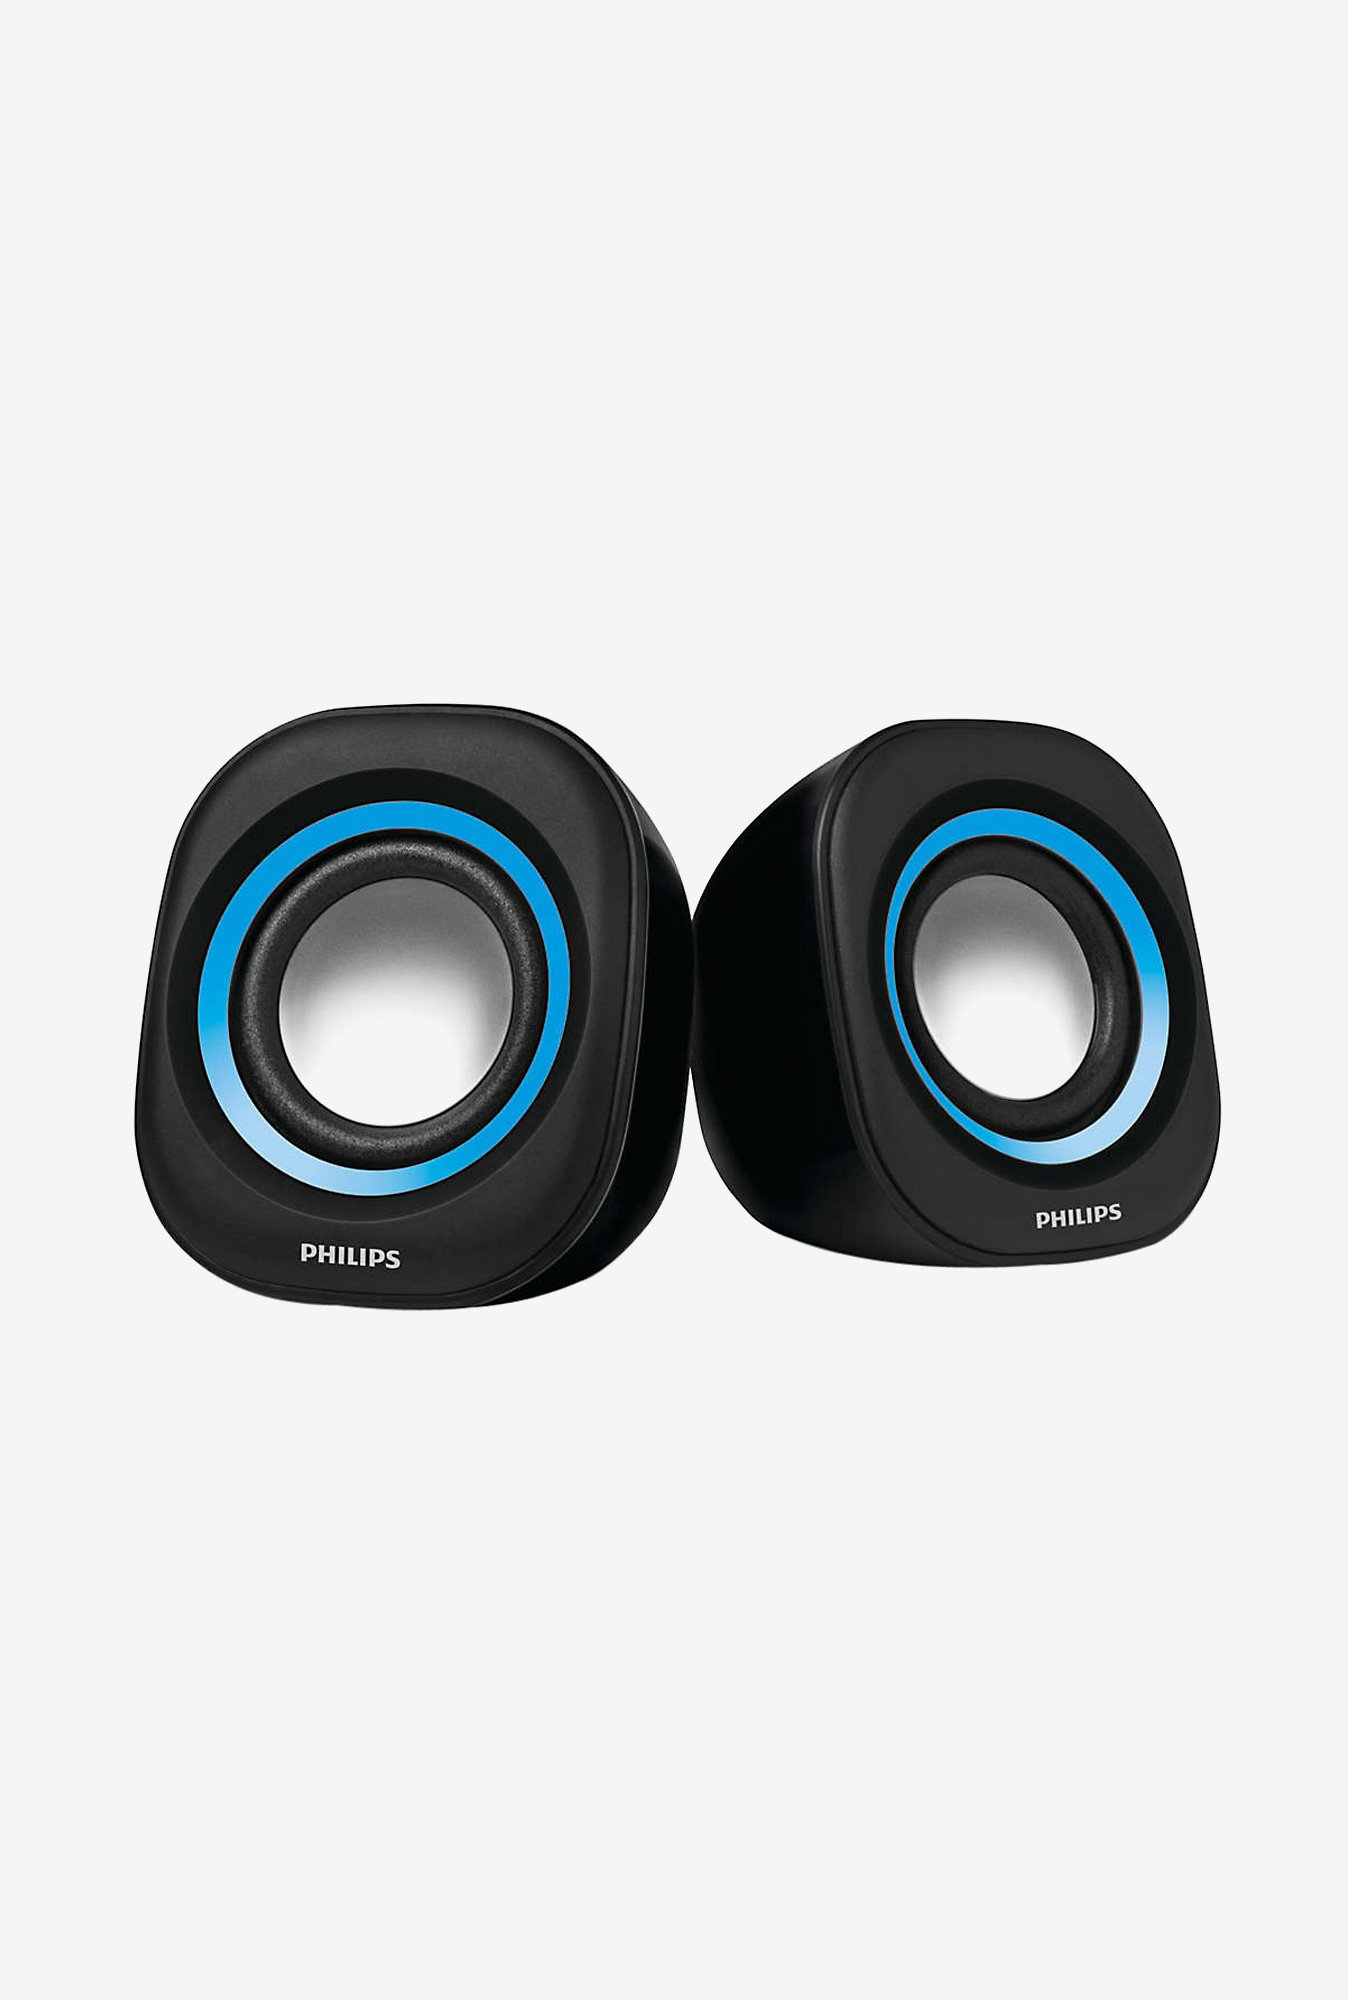 Philips SPA25 2.0 Portable Speaker with USB Plug (Blue)